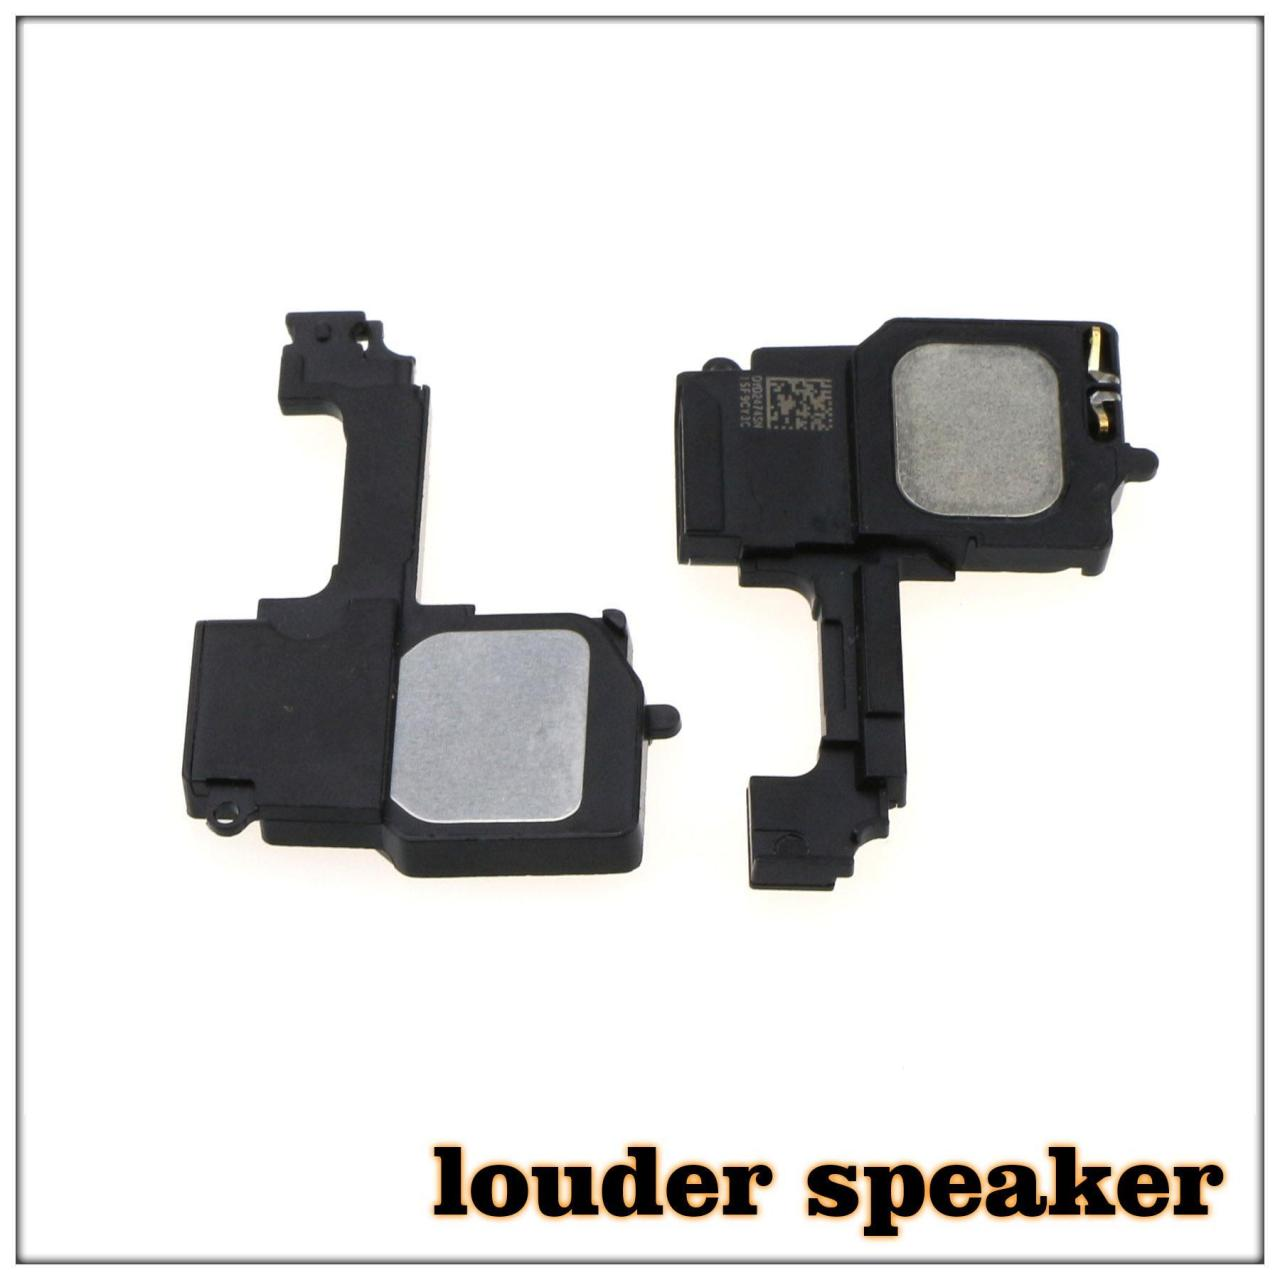 Quality iPhone louder speaker Parts inside iPhone wholesale